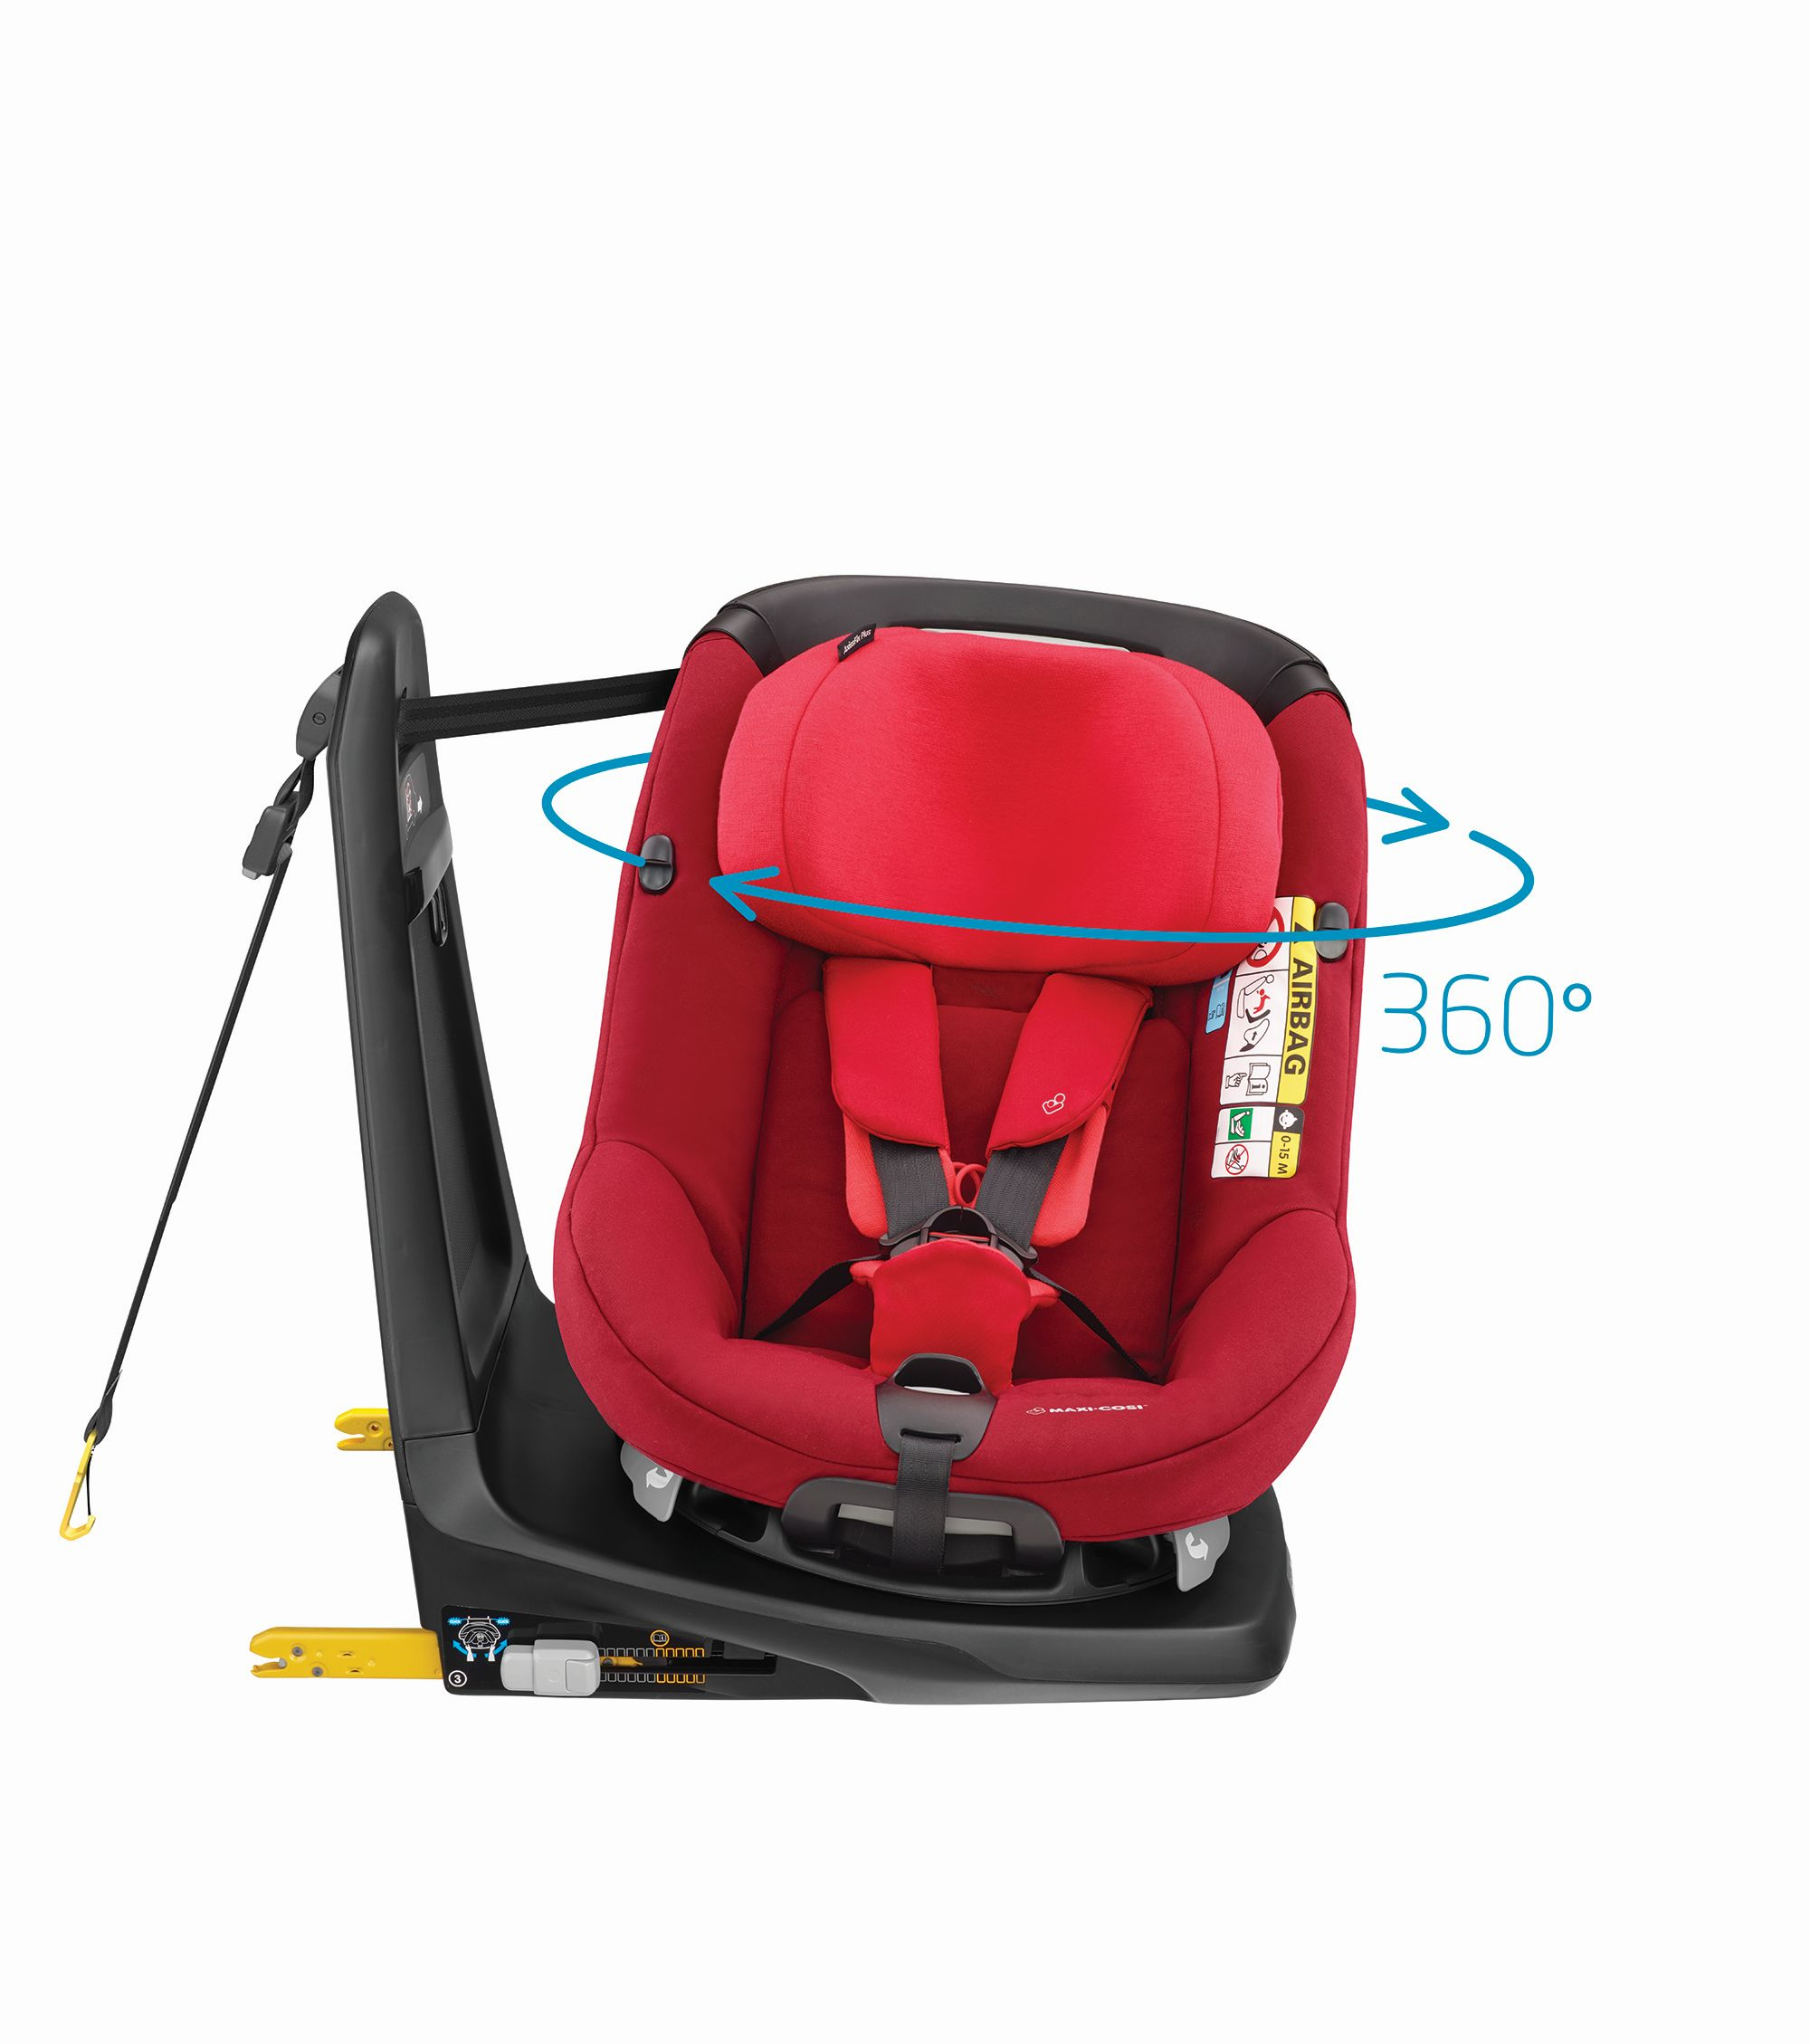 Red Chicco Car Seat >> Maxi-Cosi Child Car Seat AxissFix i-Size 2018 Vivid Red - Buy at kidsroom | Car Seats